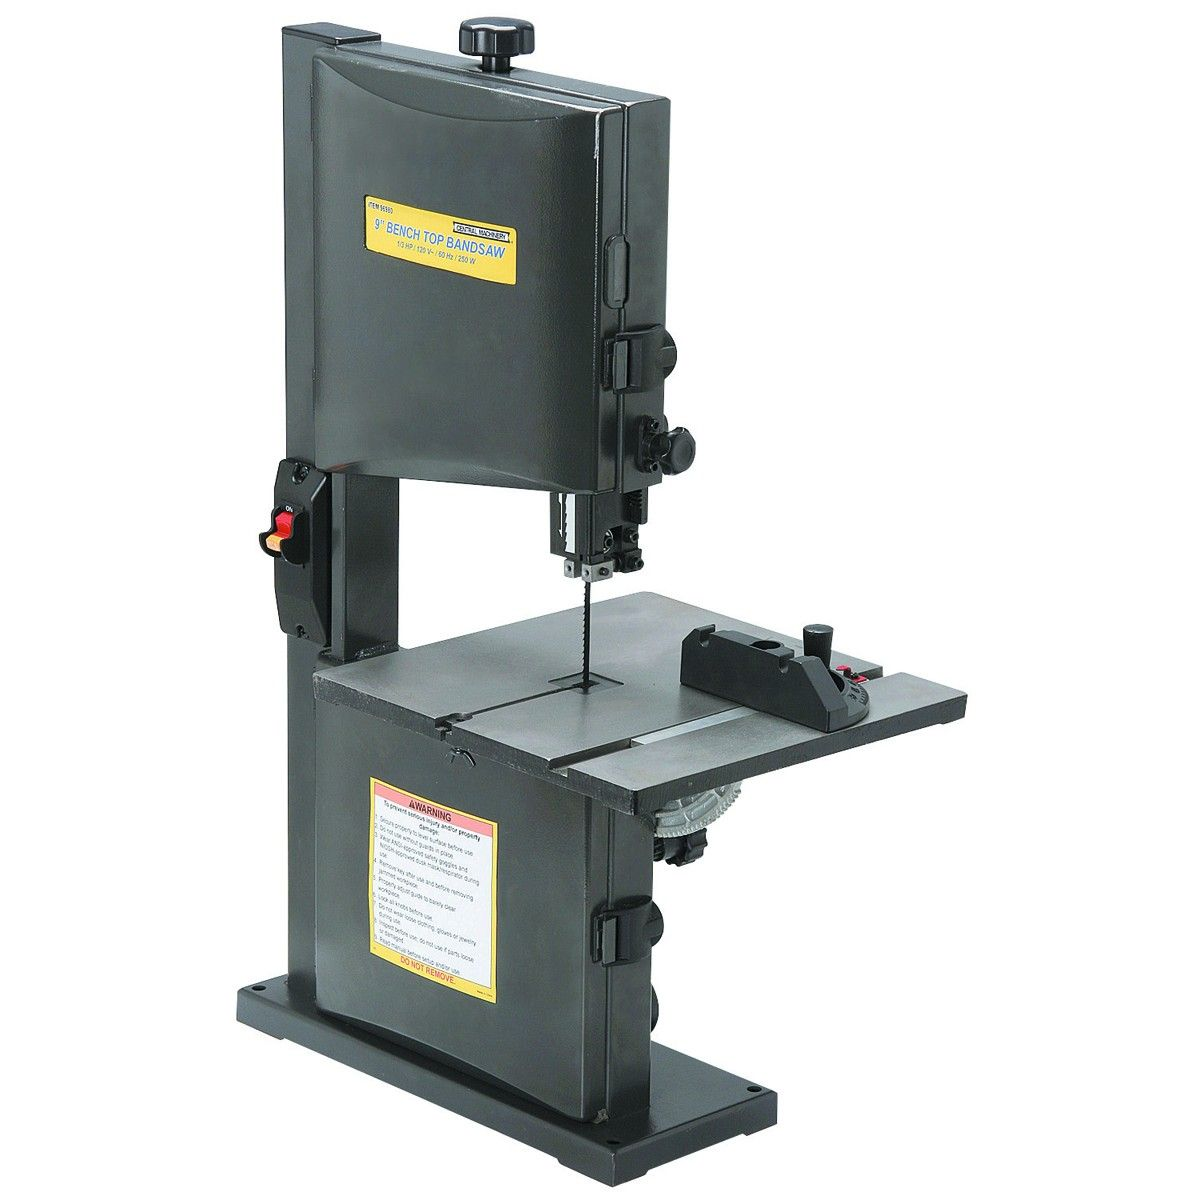 Central Machinery 96980 9 Benchtop Bandsaw In 2020 Bandsaw Harbor Freight Bandsaw Harbor Freight Tools